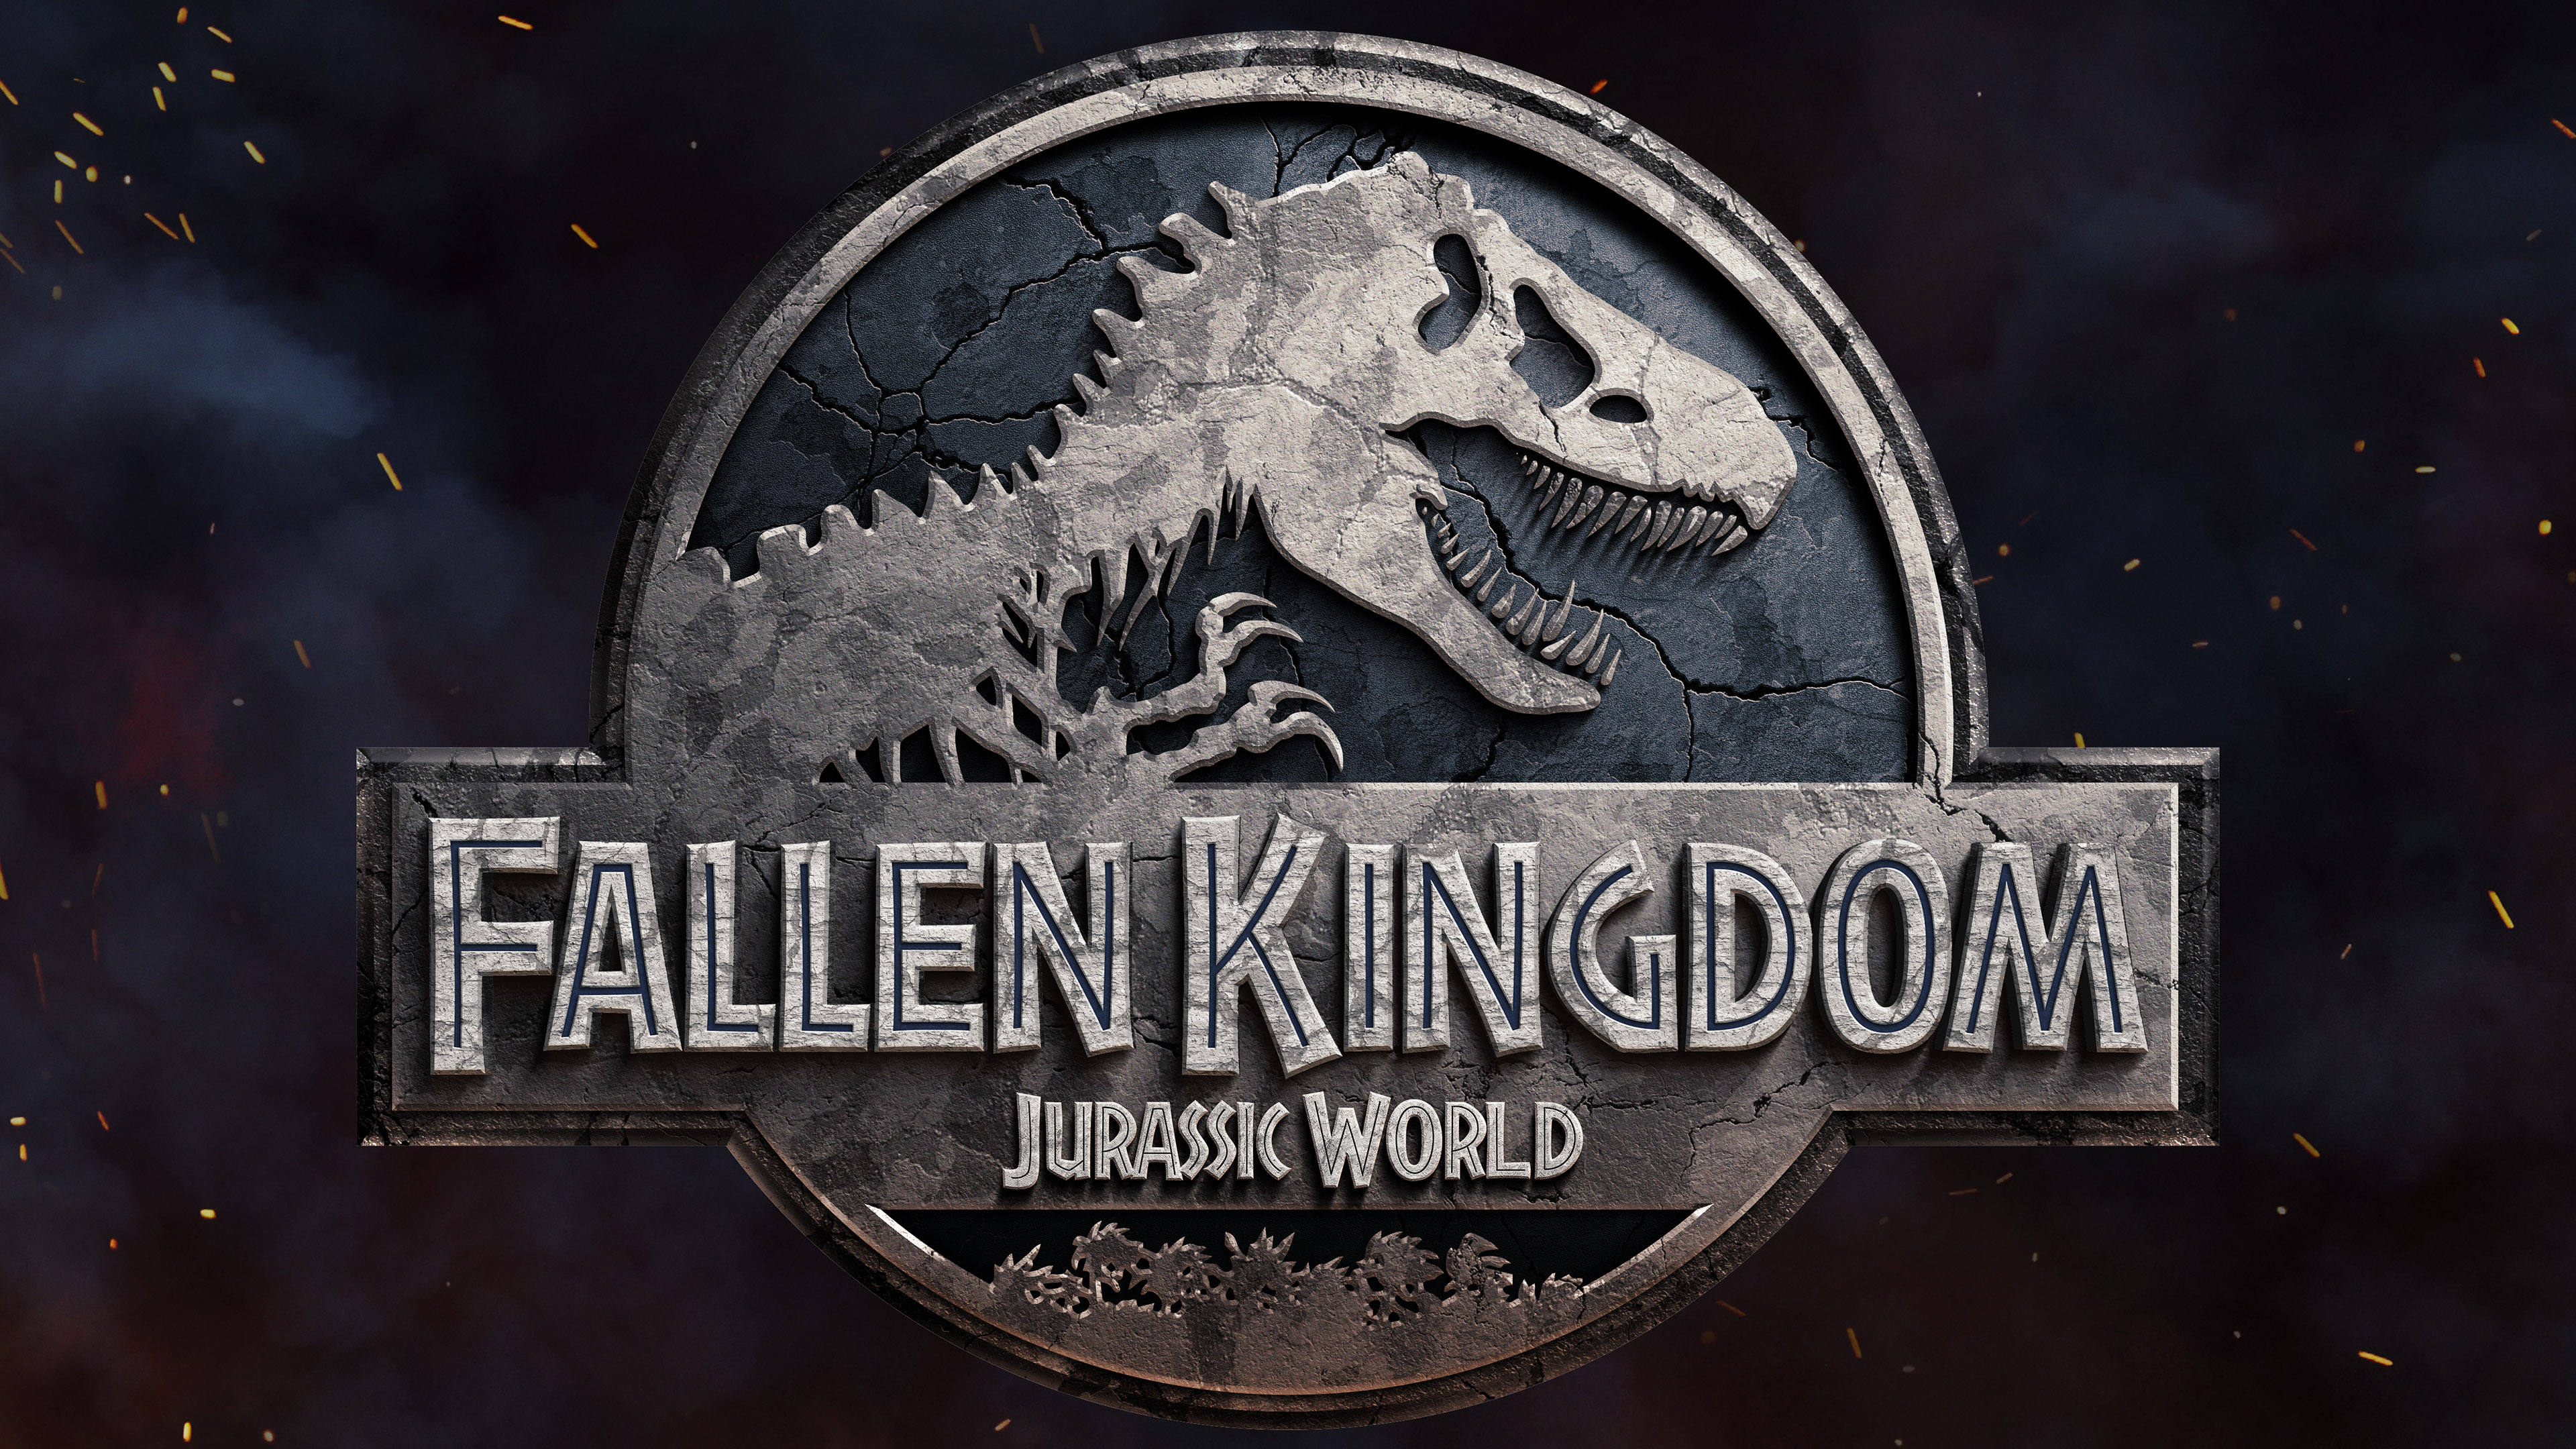 1920x1080 Jurassic World Fallen Kingdom 2018 4k Laptop Full Hd 1080p Hd 4k Wallpapers Images Backgrounds Photos And Pictures